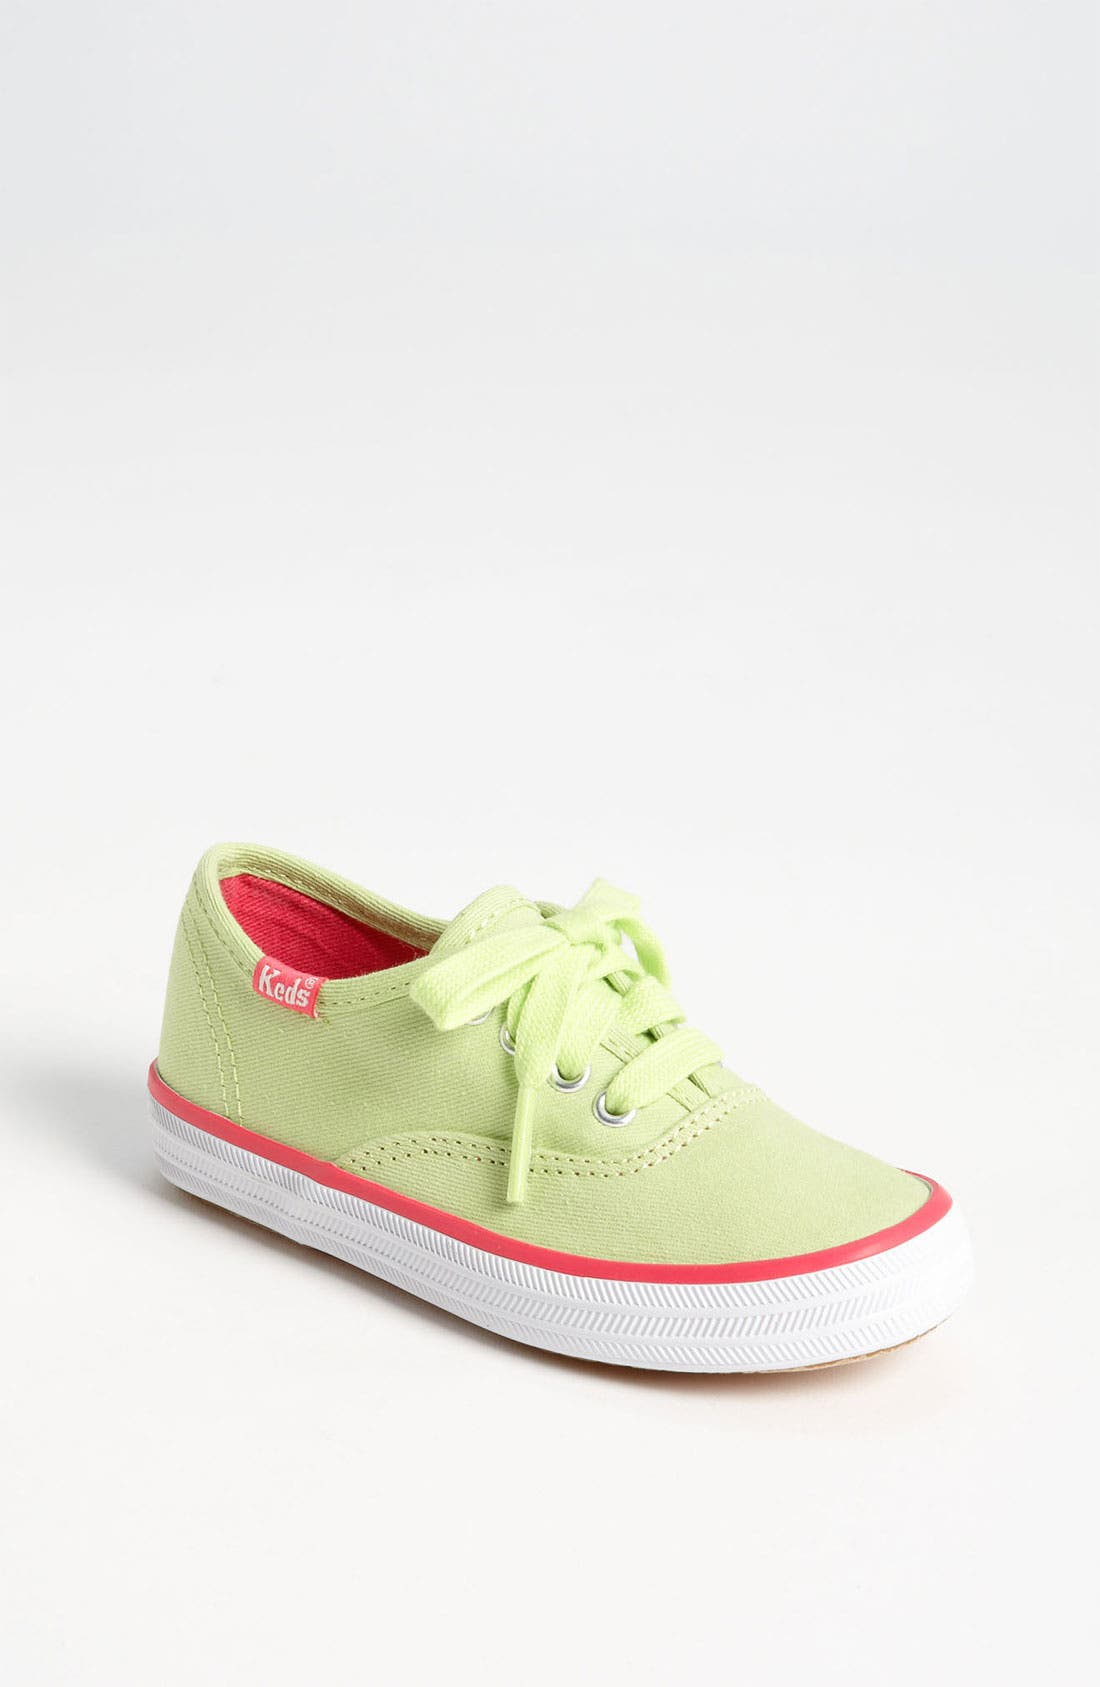 Main Image - Keds® 'Original Champion - CVO' Sneaker (Toddler, Little Kid & Big Kid)